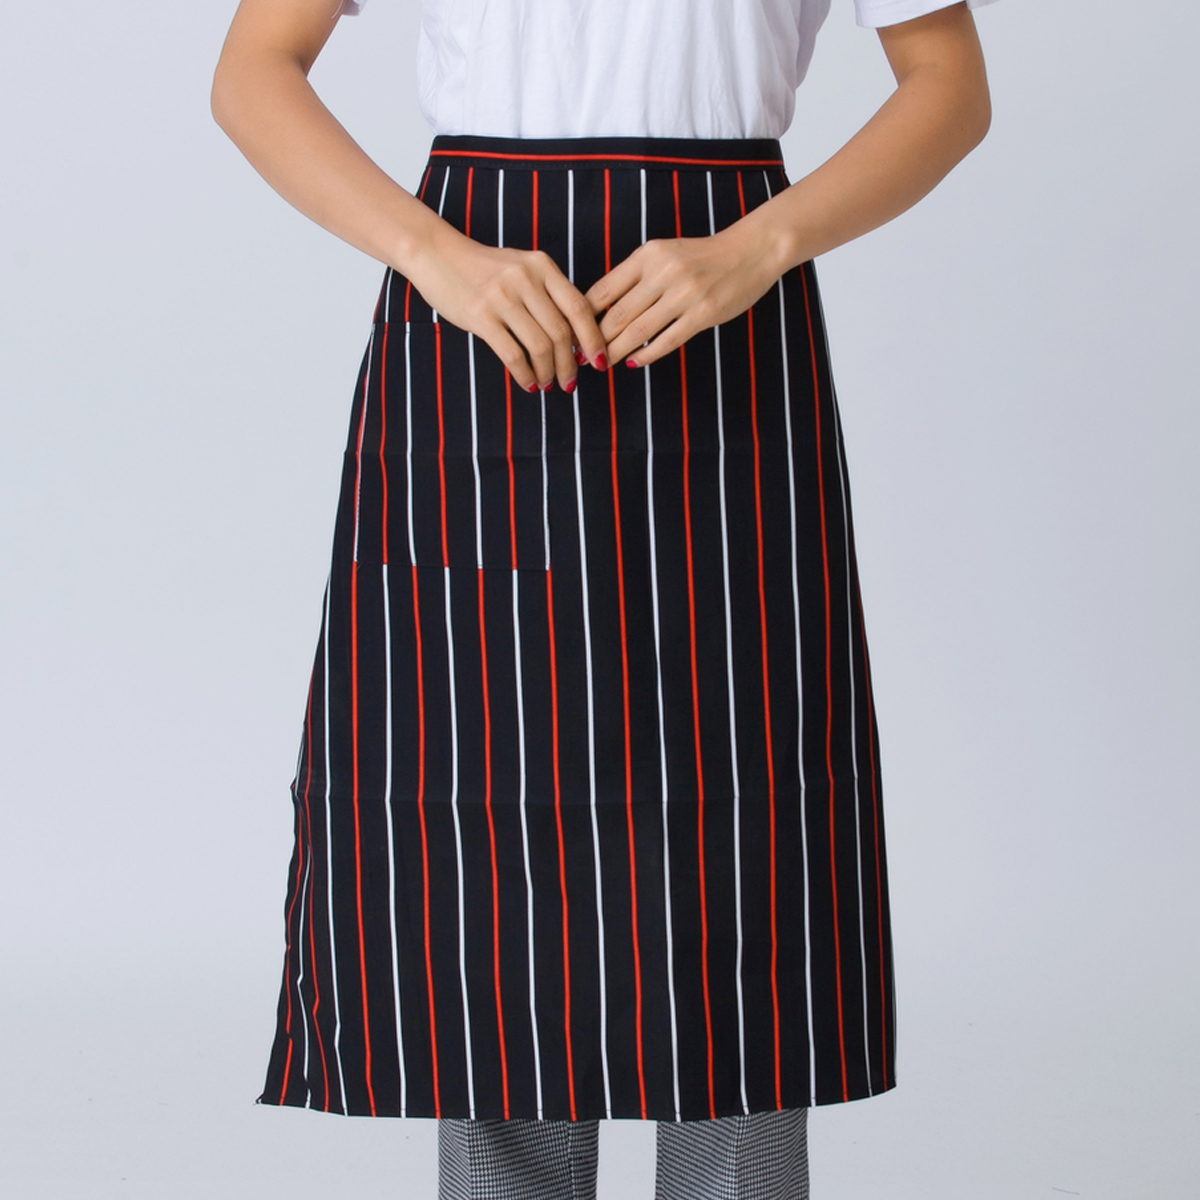 Buy white apron online - Hotel Chef Kitchen Apron Home Furnishing Bakery And Restaurant Waiter Body Hanging Neck Waiters Uniforms For